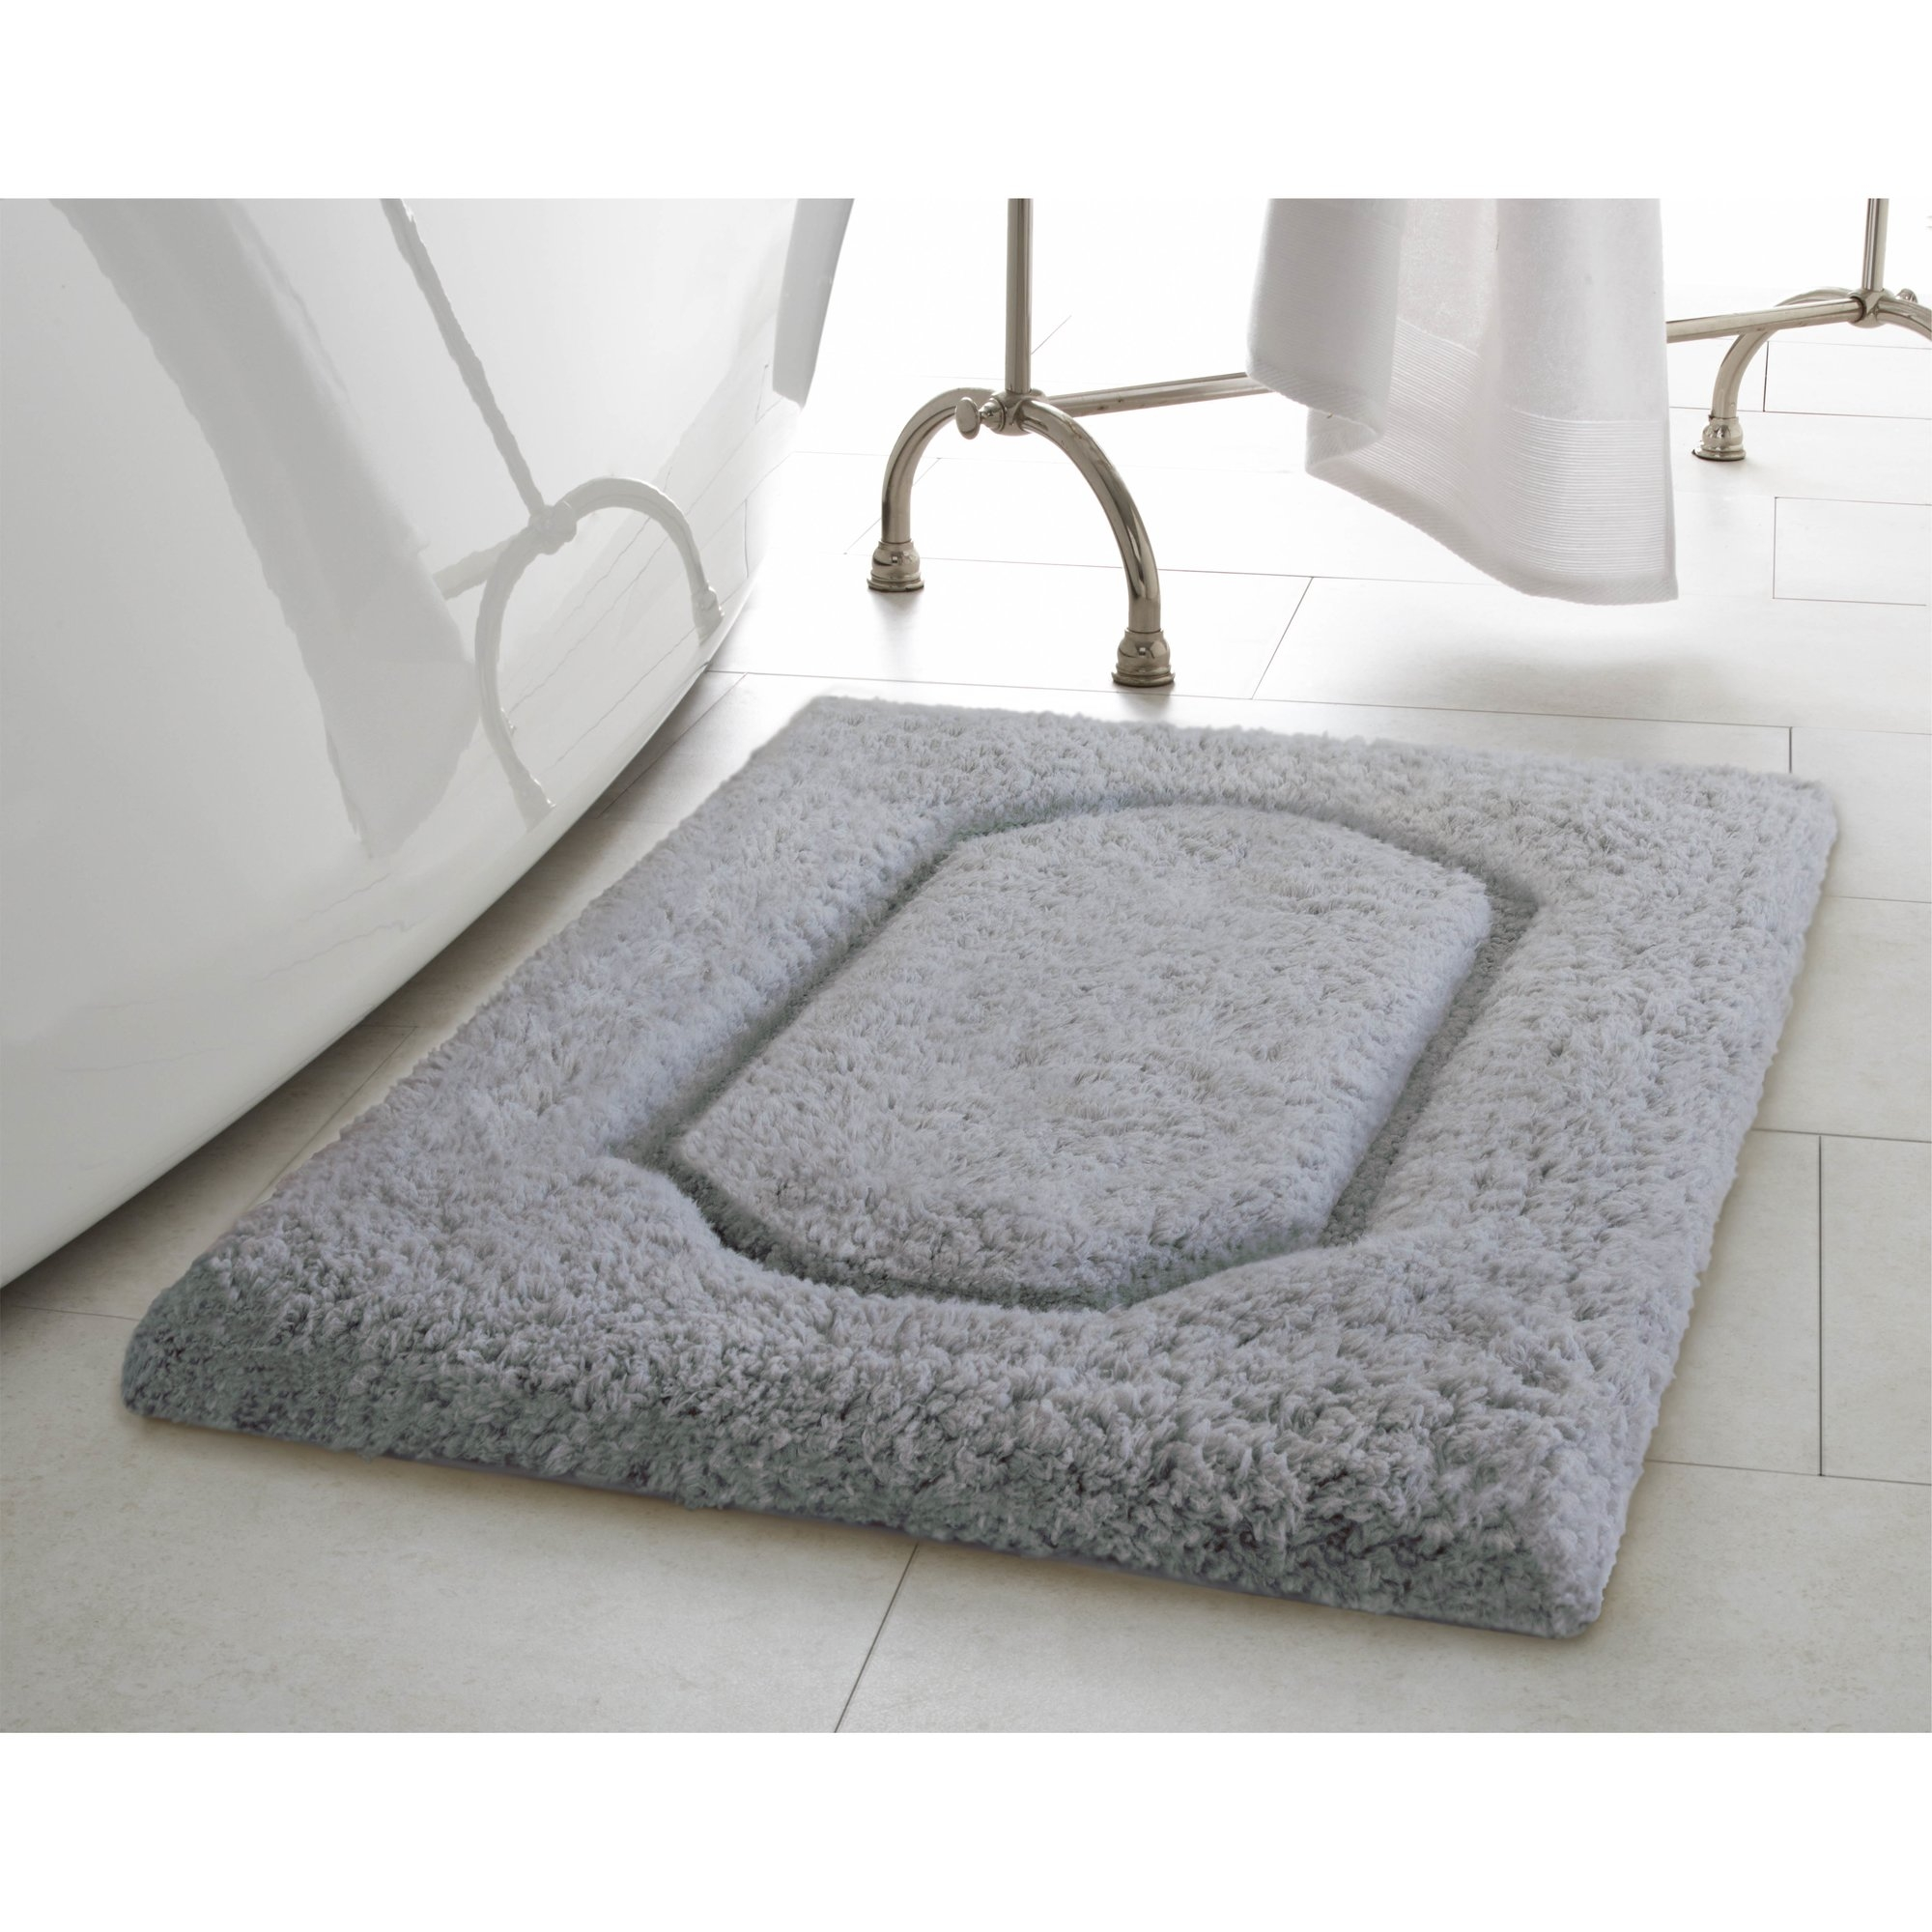 Permalink to White Plush Bathroom Rugs